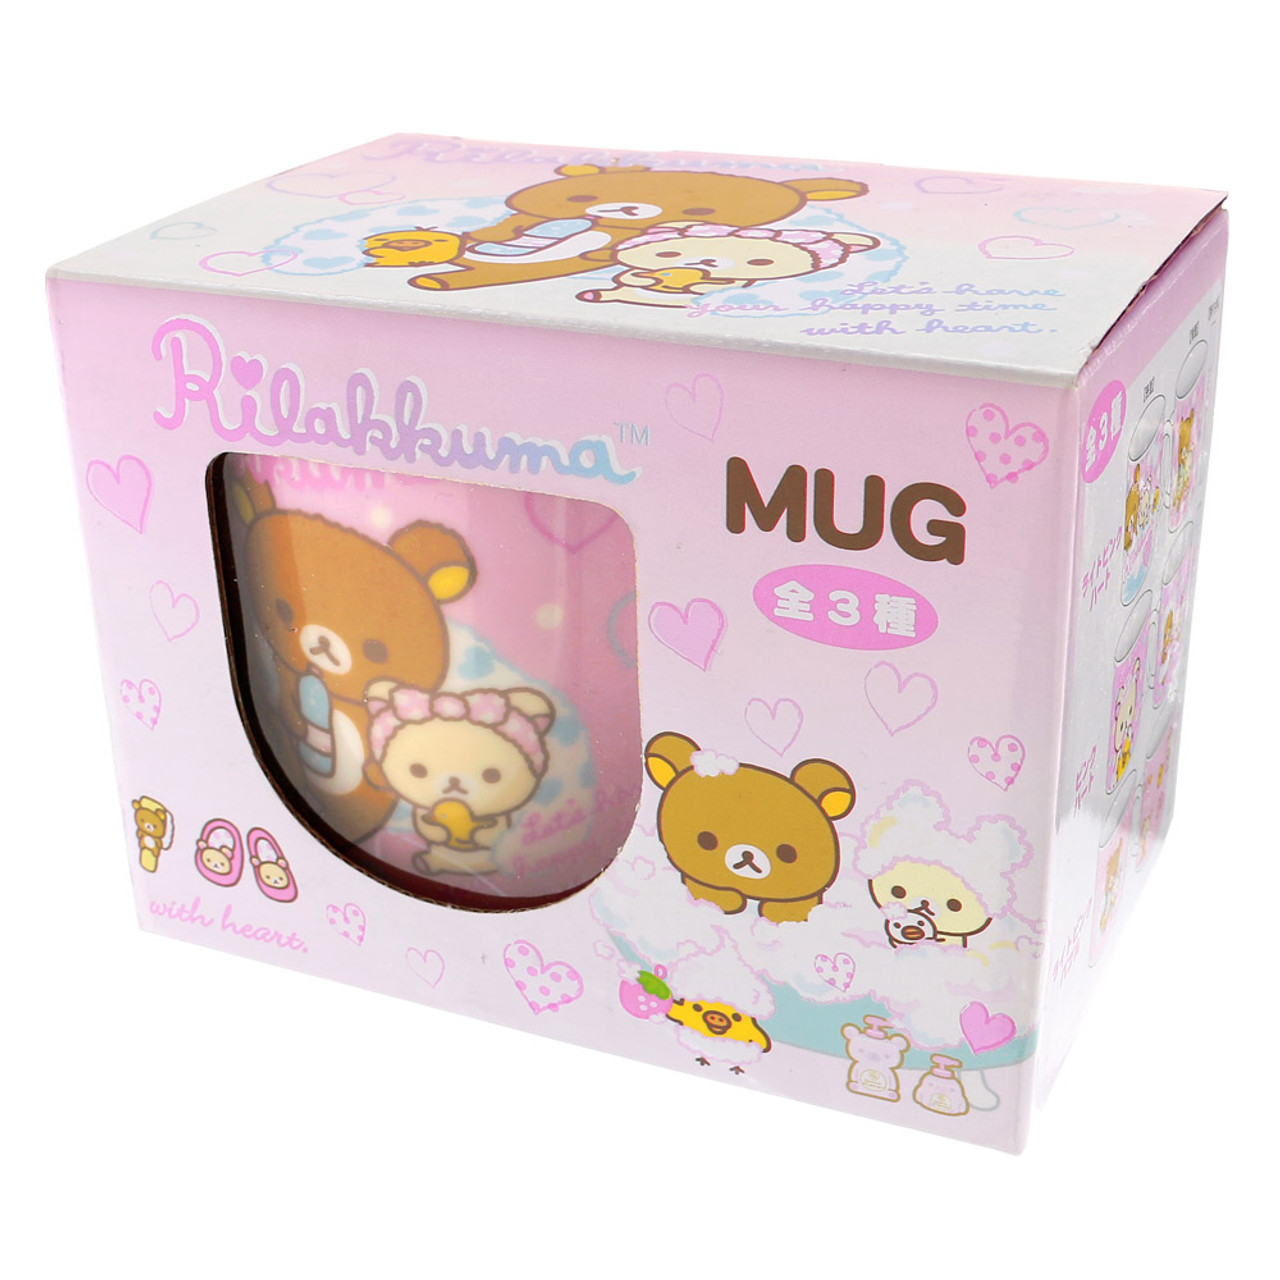 San-x Rilakkuma Bath Time Light Pink Ceramic Mug - Bubble ( Box View )